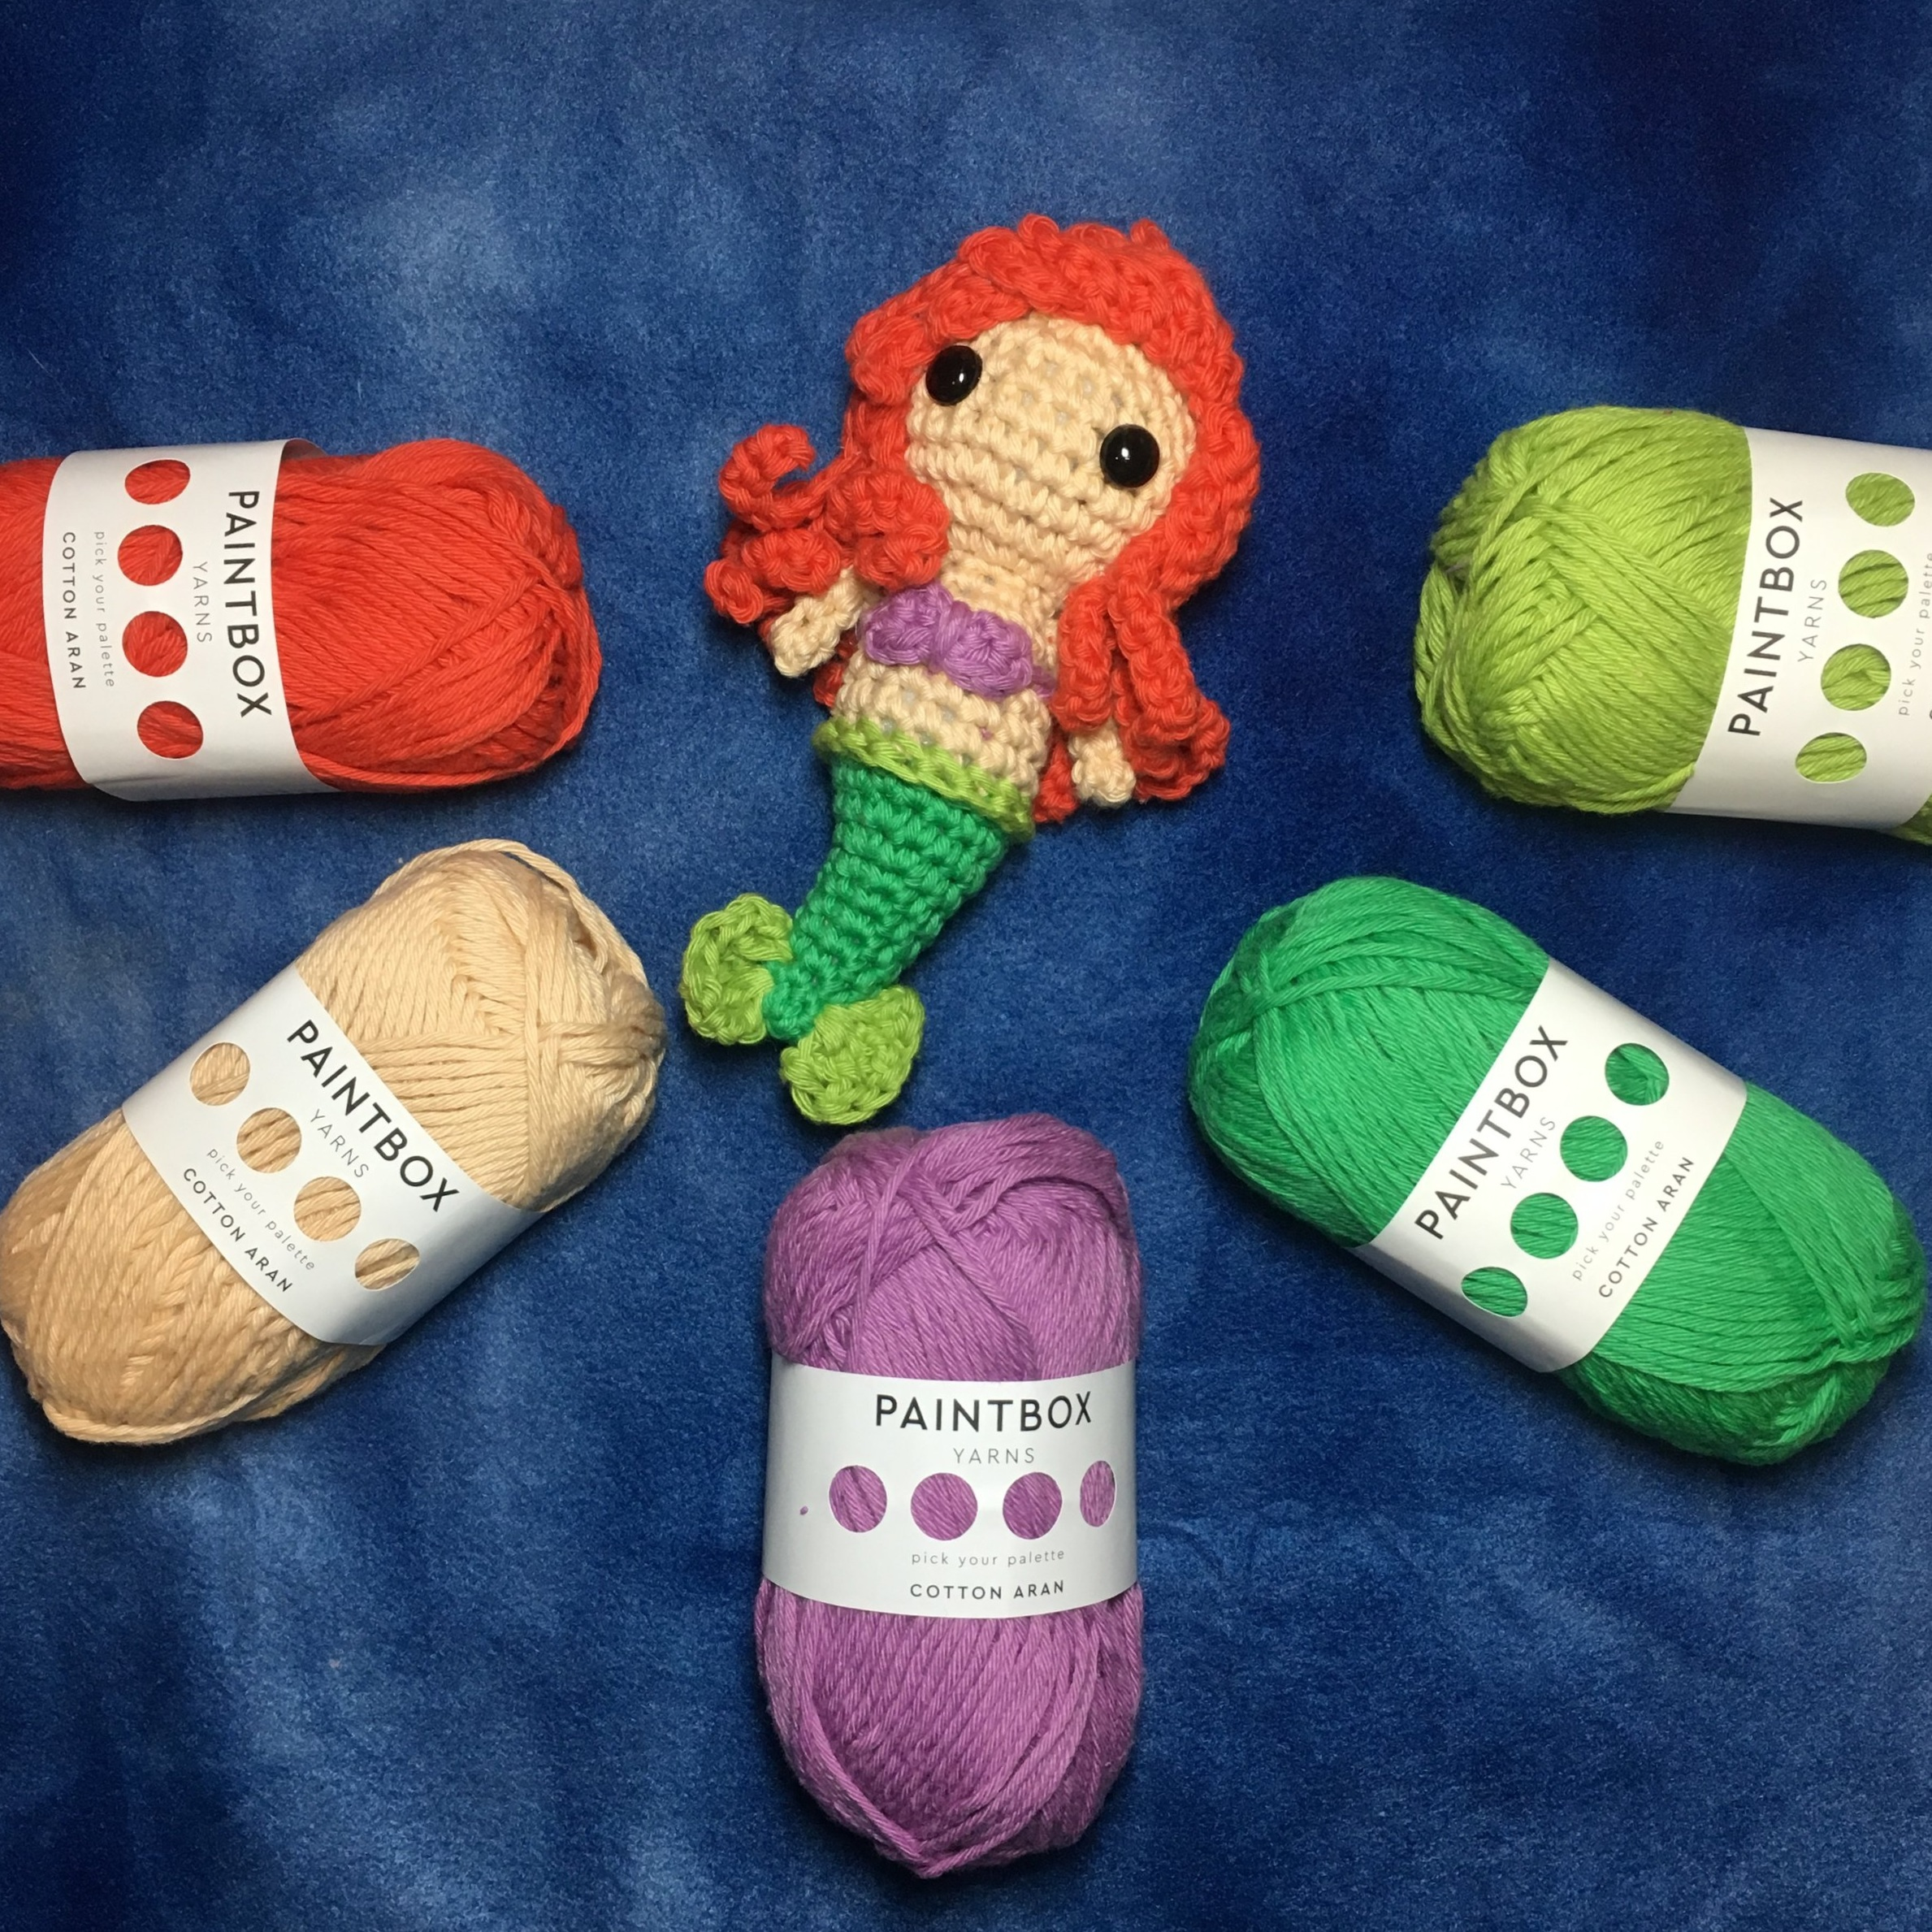 My Beautiful Ariel made using Paintbox yarns, cotton aran. made using the pattern for marlie the mermaid.